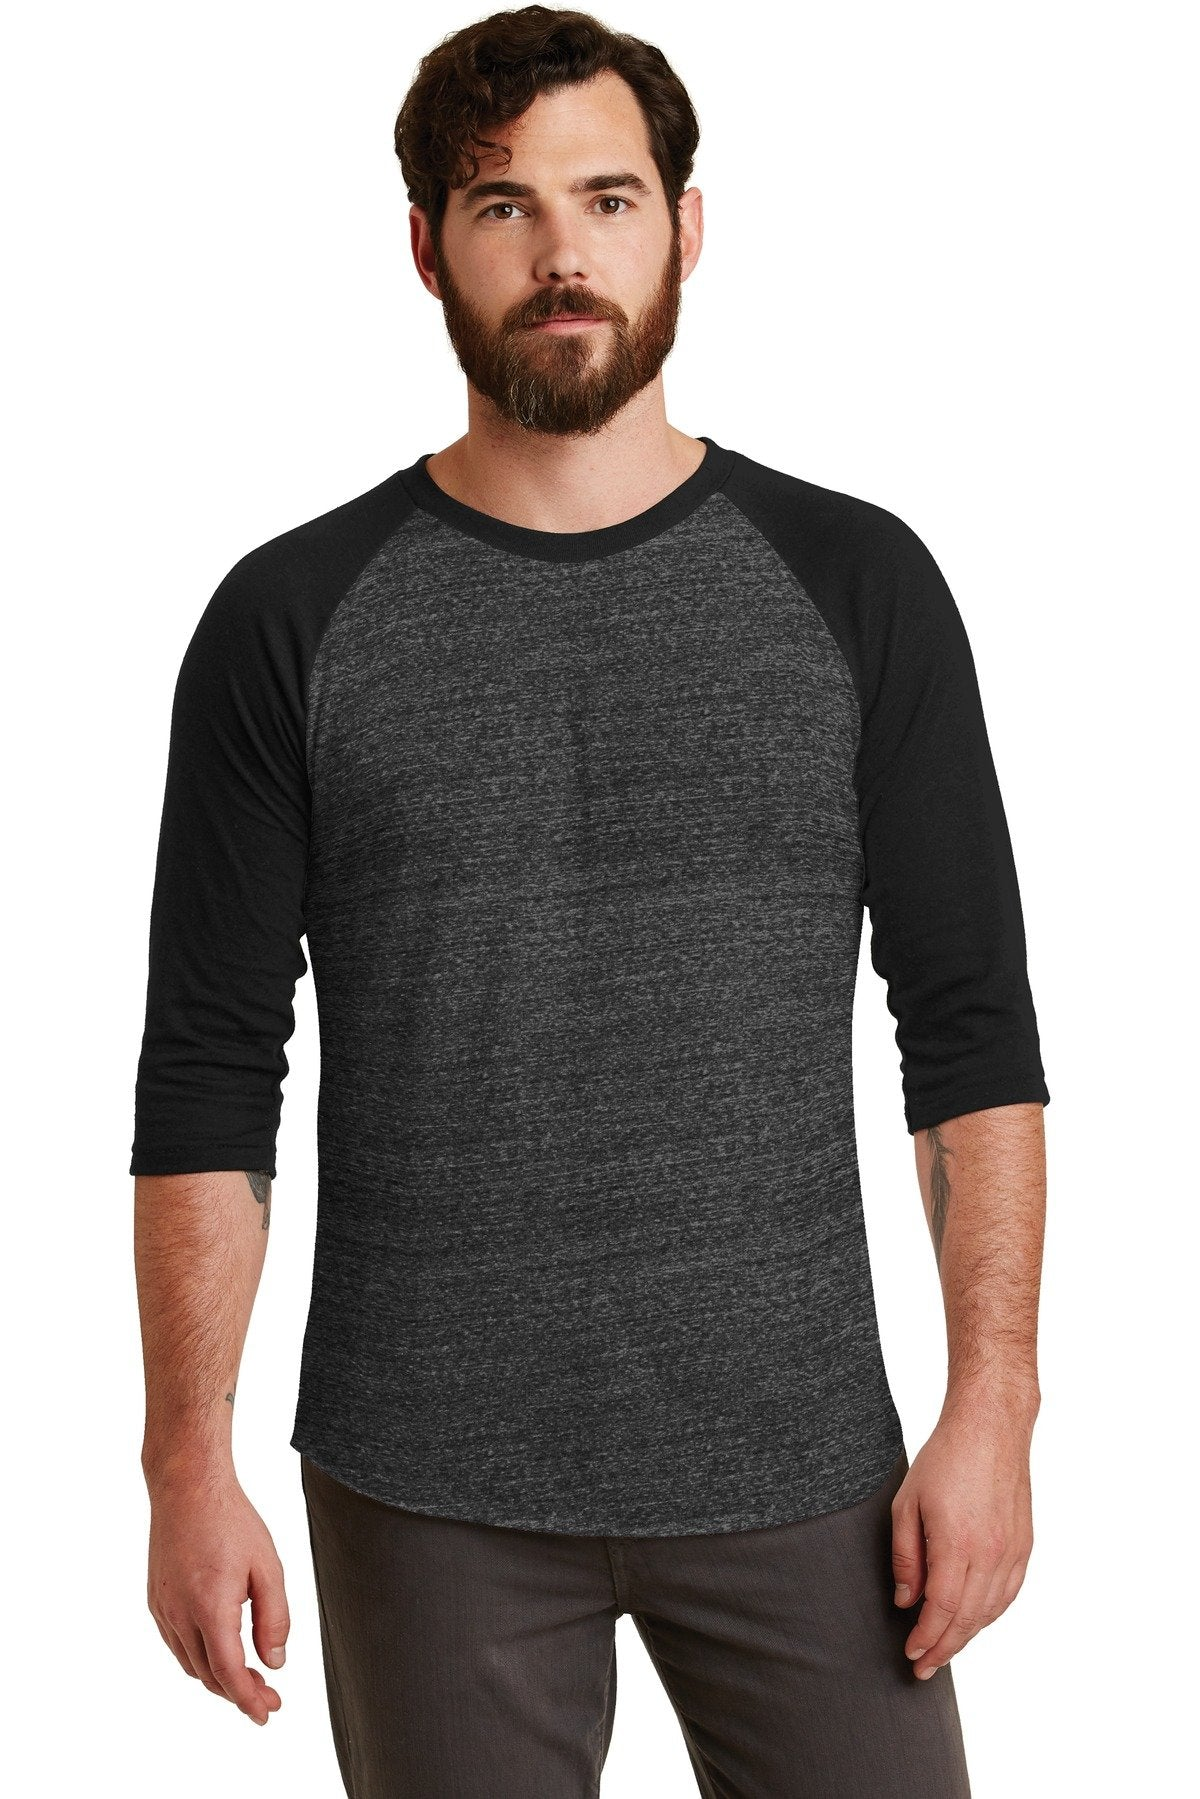 Eco Black/ Eco True Black - Alternative Apparel AA2089